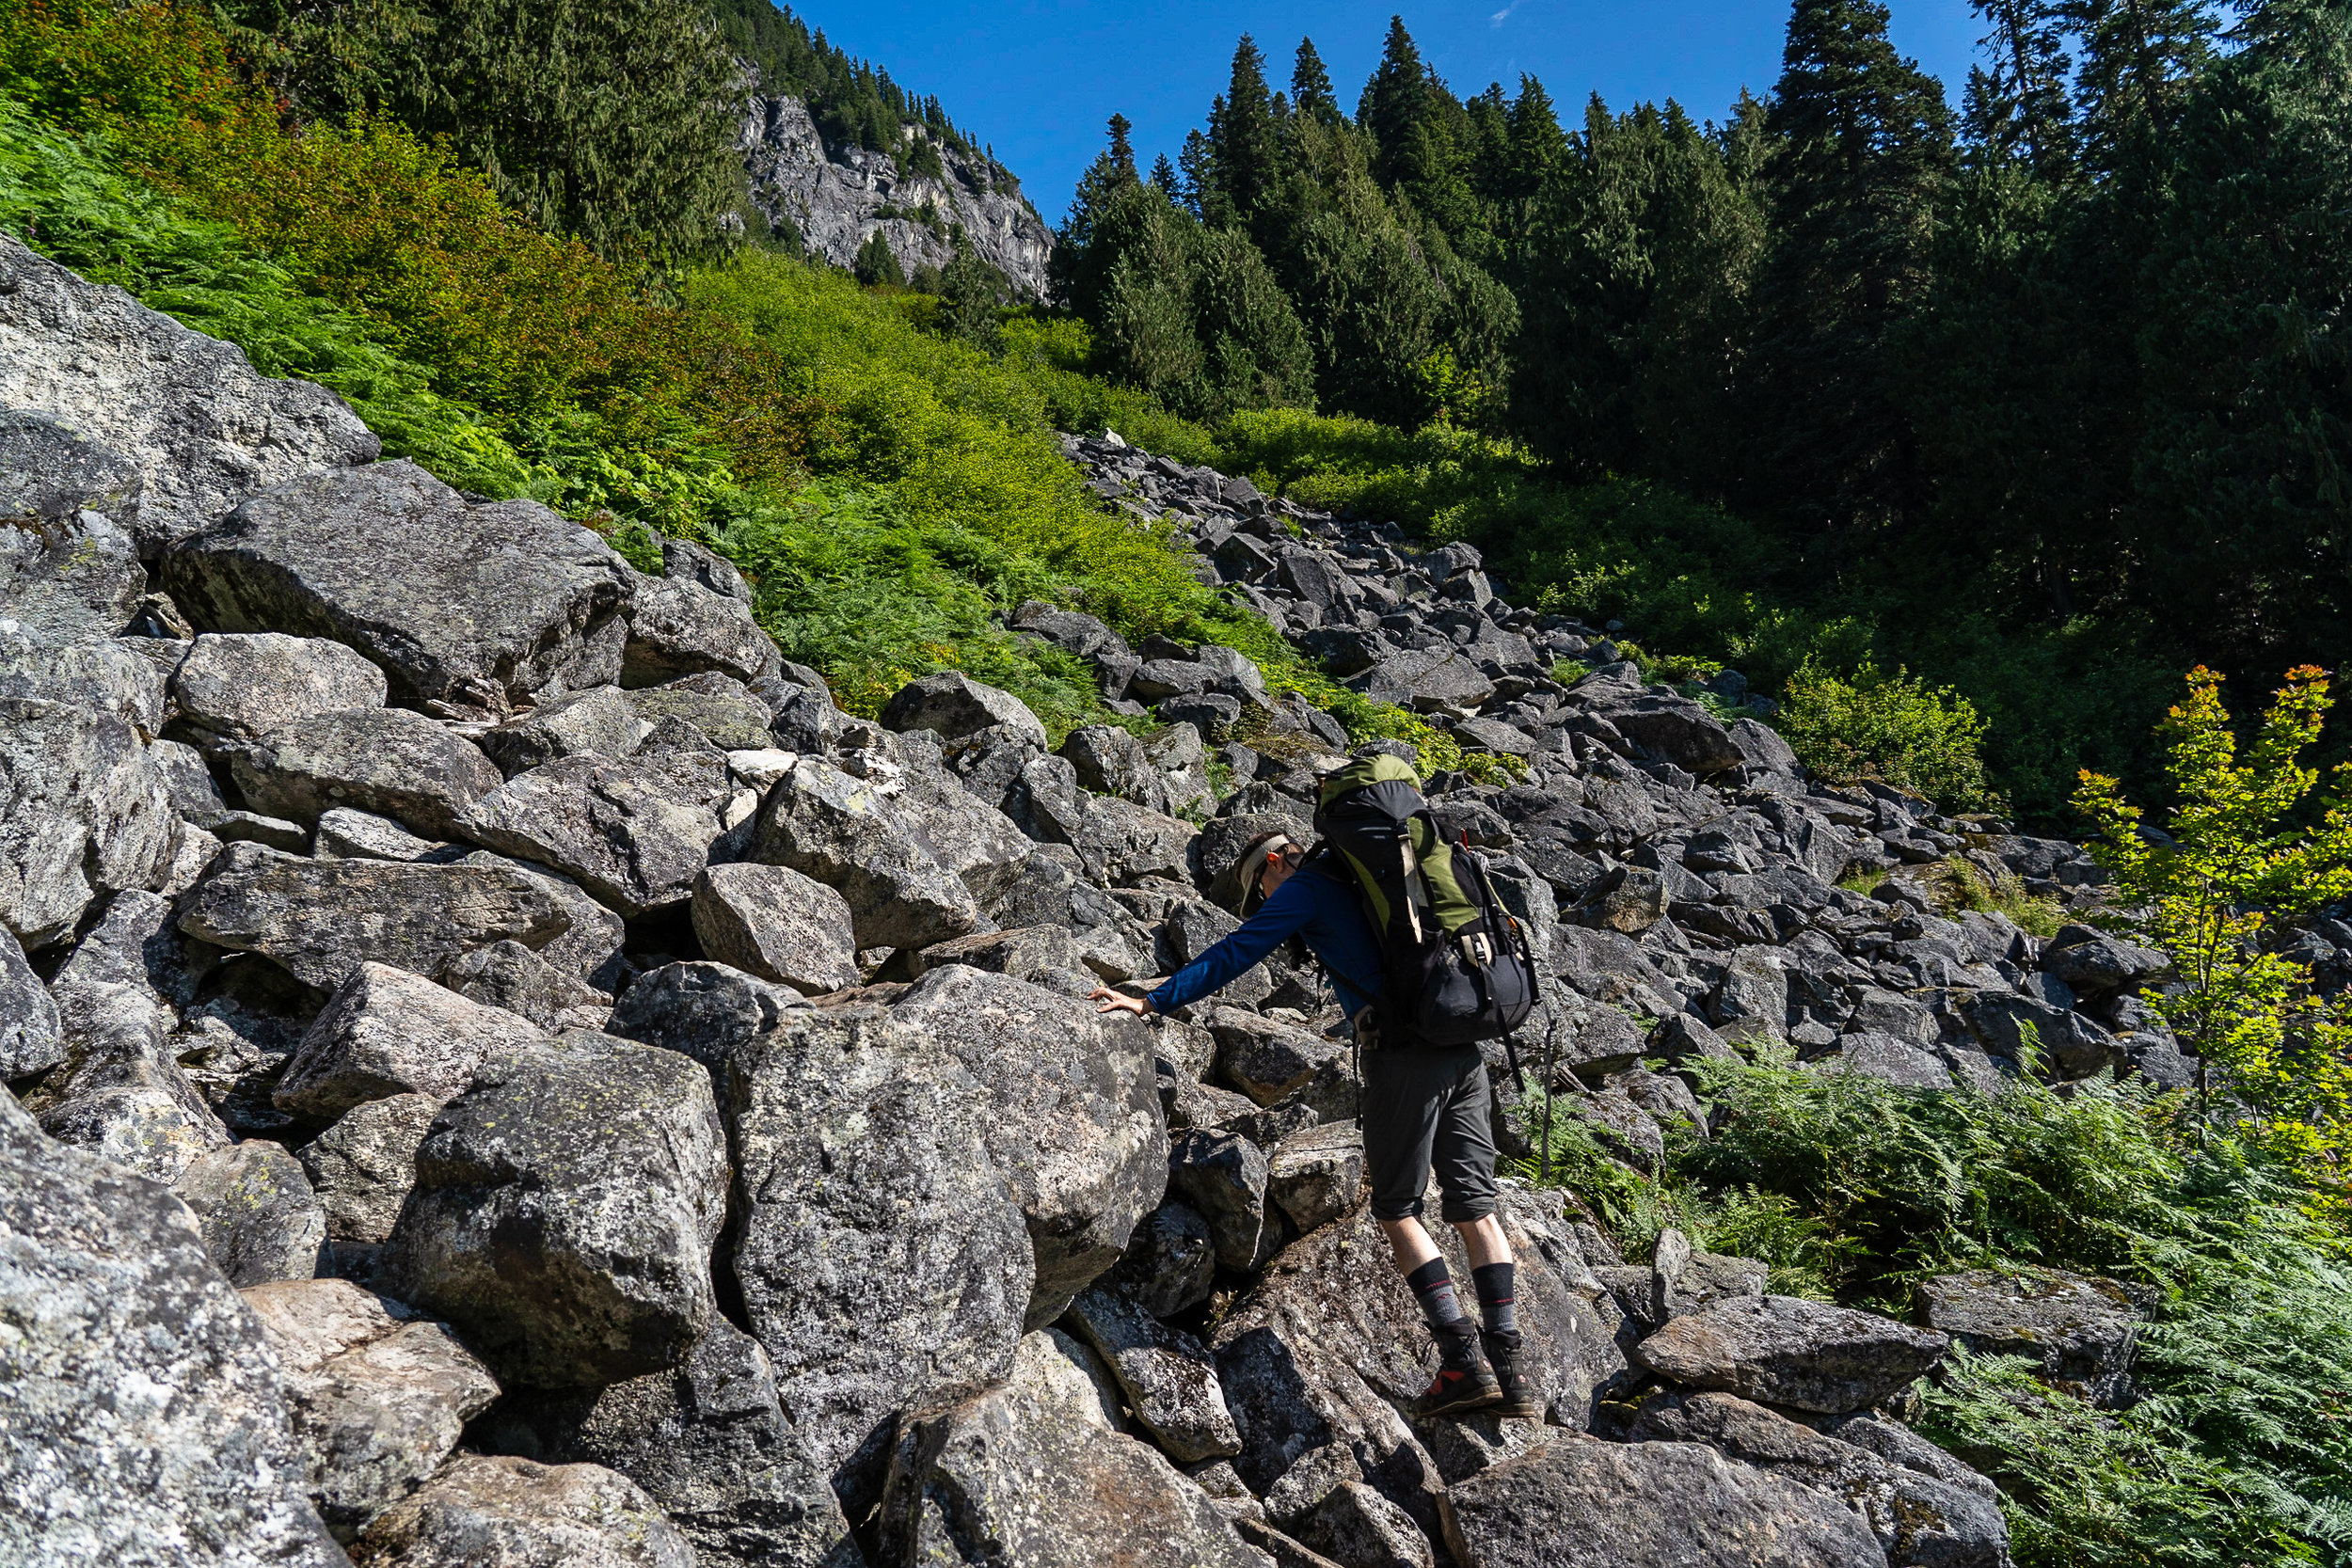 Here we go up the boulder field